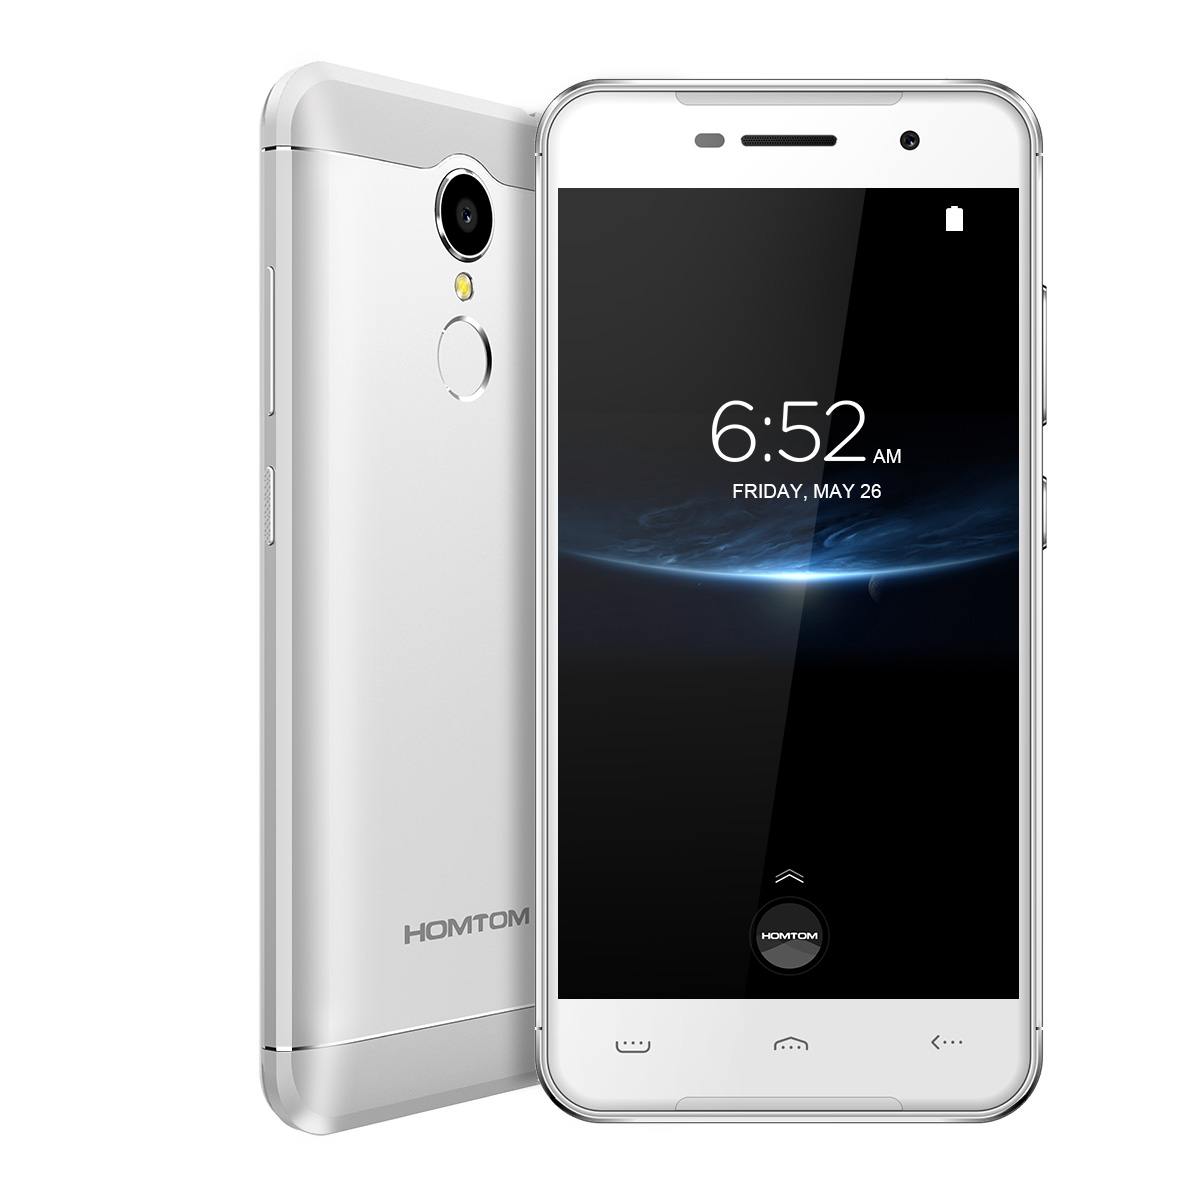 5.0 inch homtom ht37 pro 4g smartphones (silver)